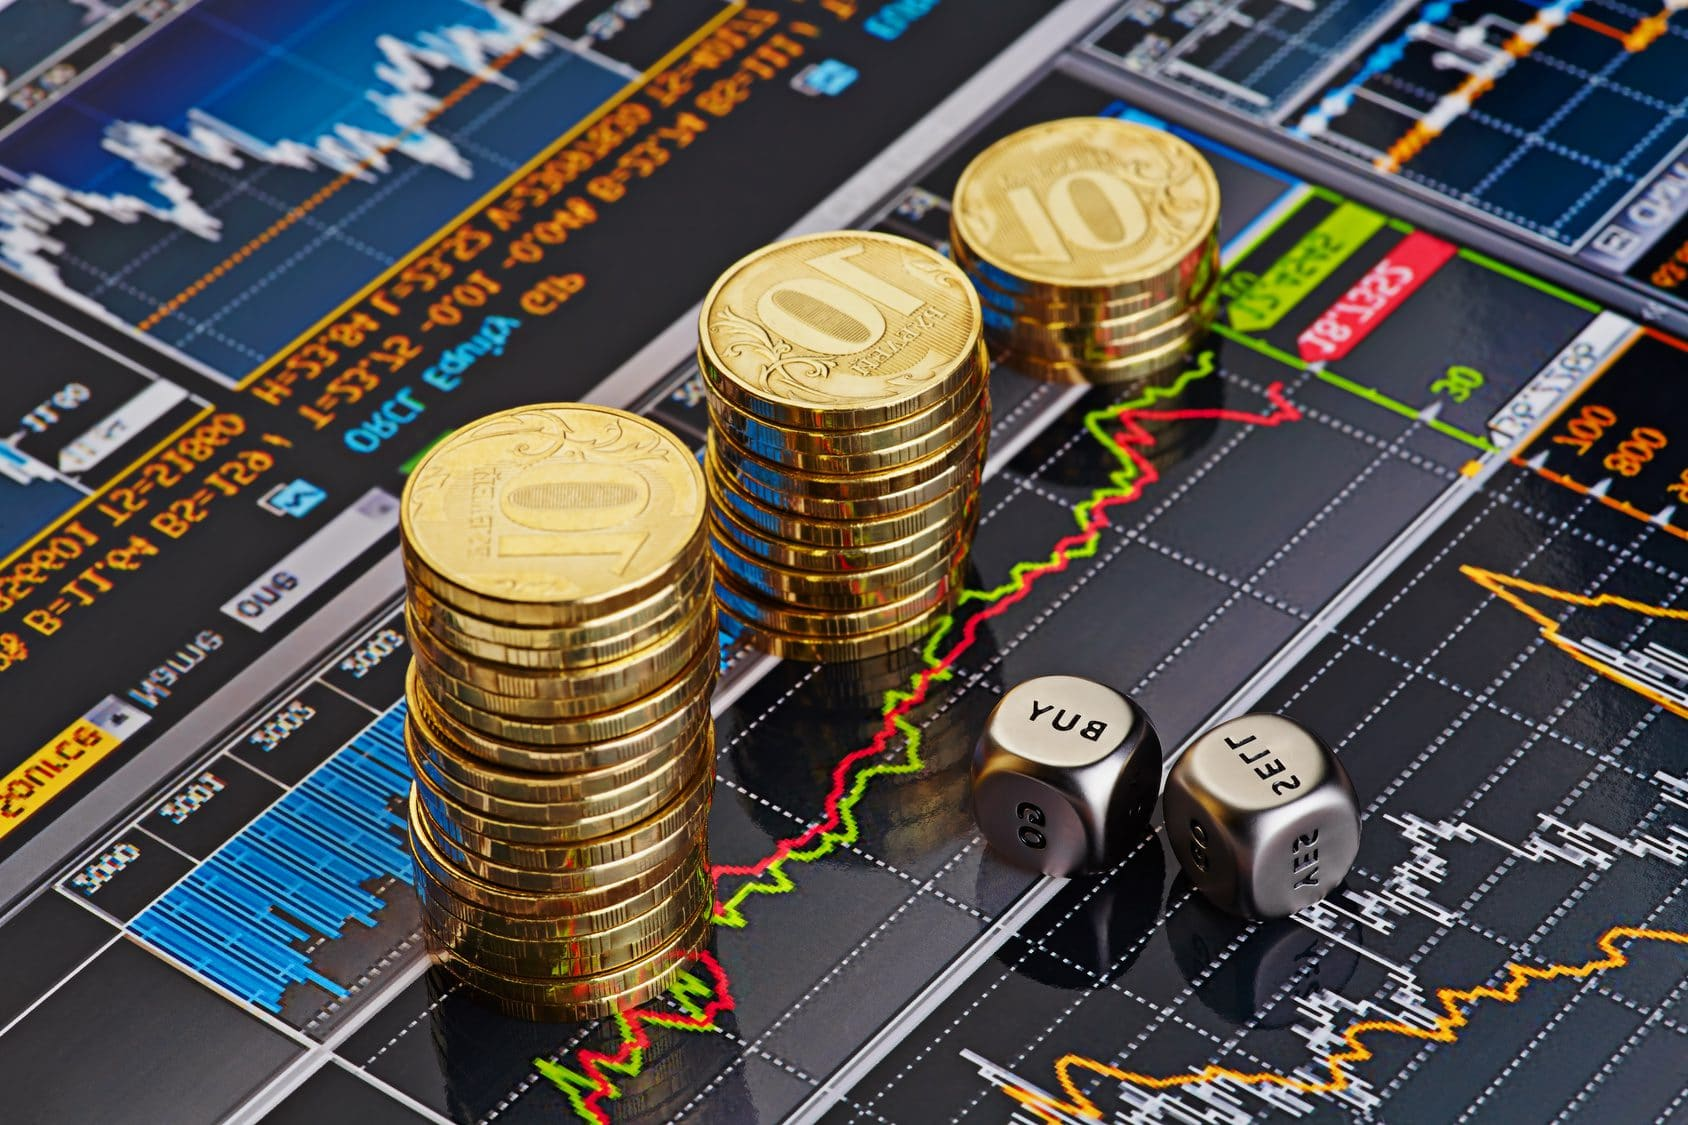 How can we make consistent profit in Intraday Trading?